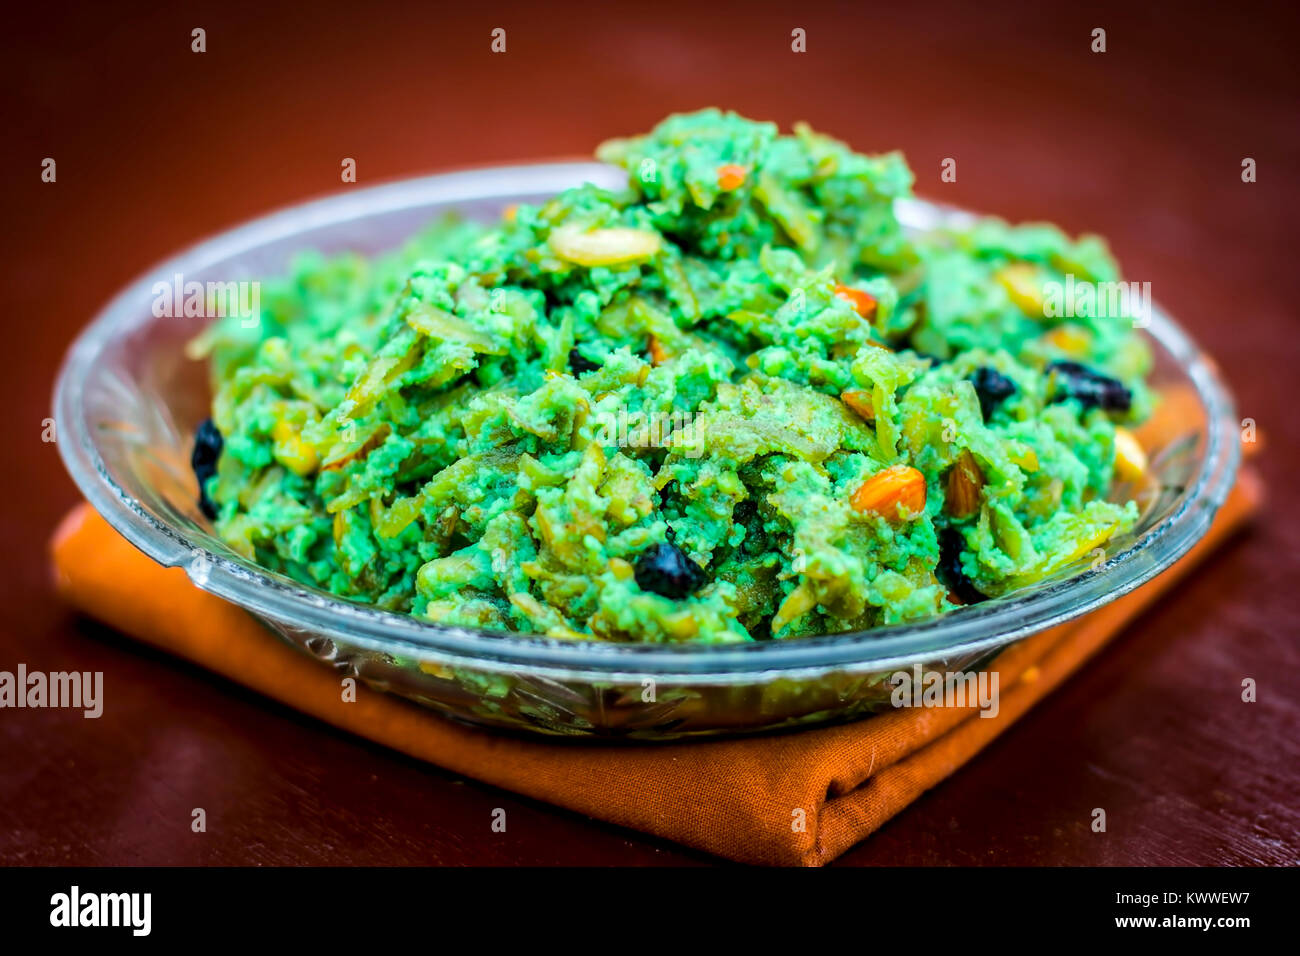 Halwa of  Lagenaria siceraria,bottle guard[Dudhi ka halwa] an Indian sweet dessert served before or after lunch - Stock Image